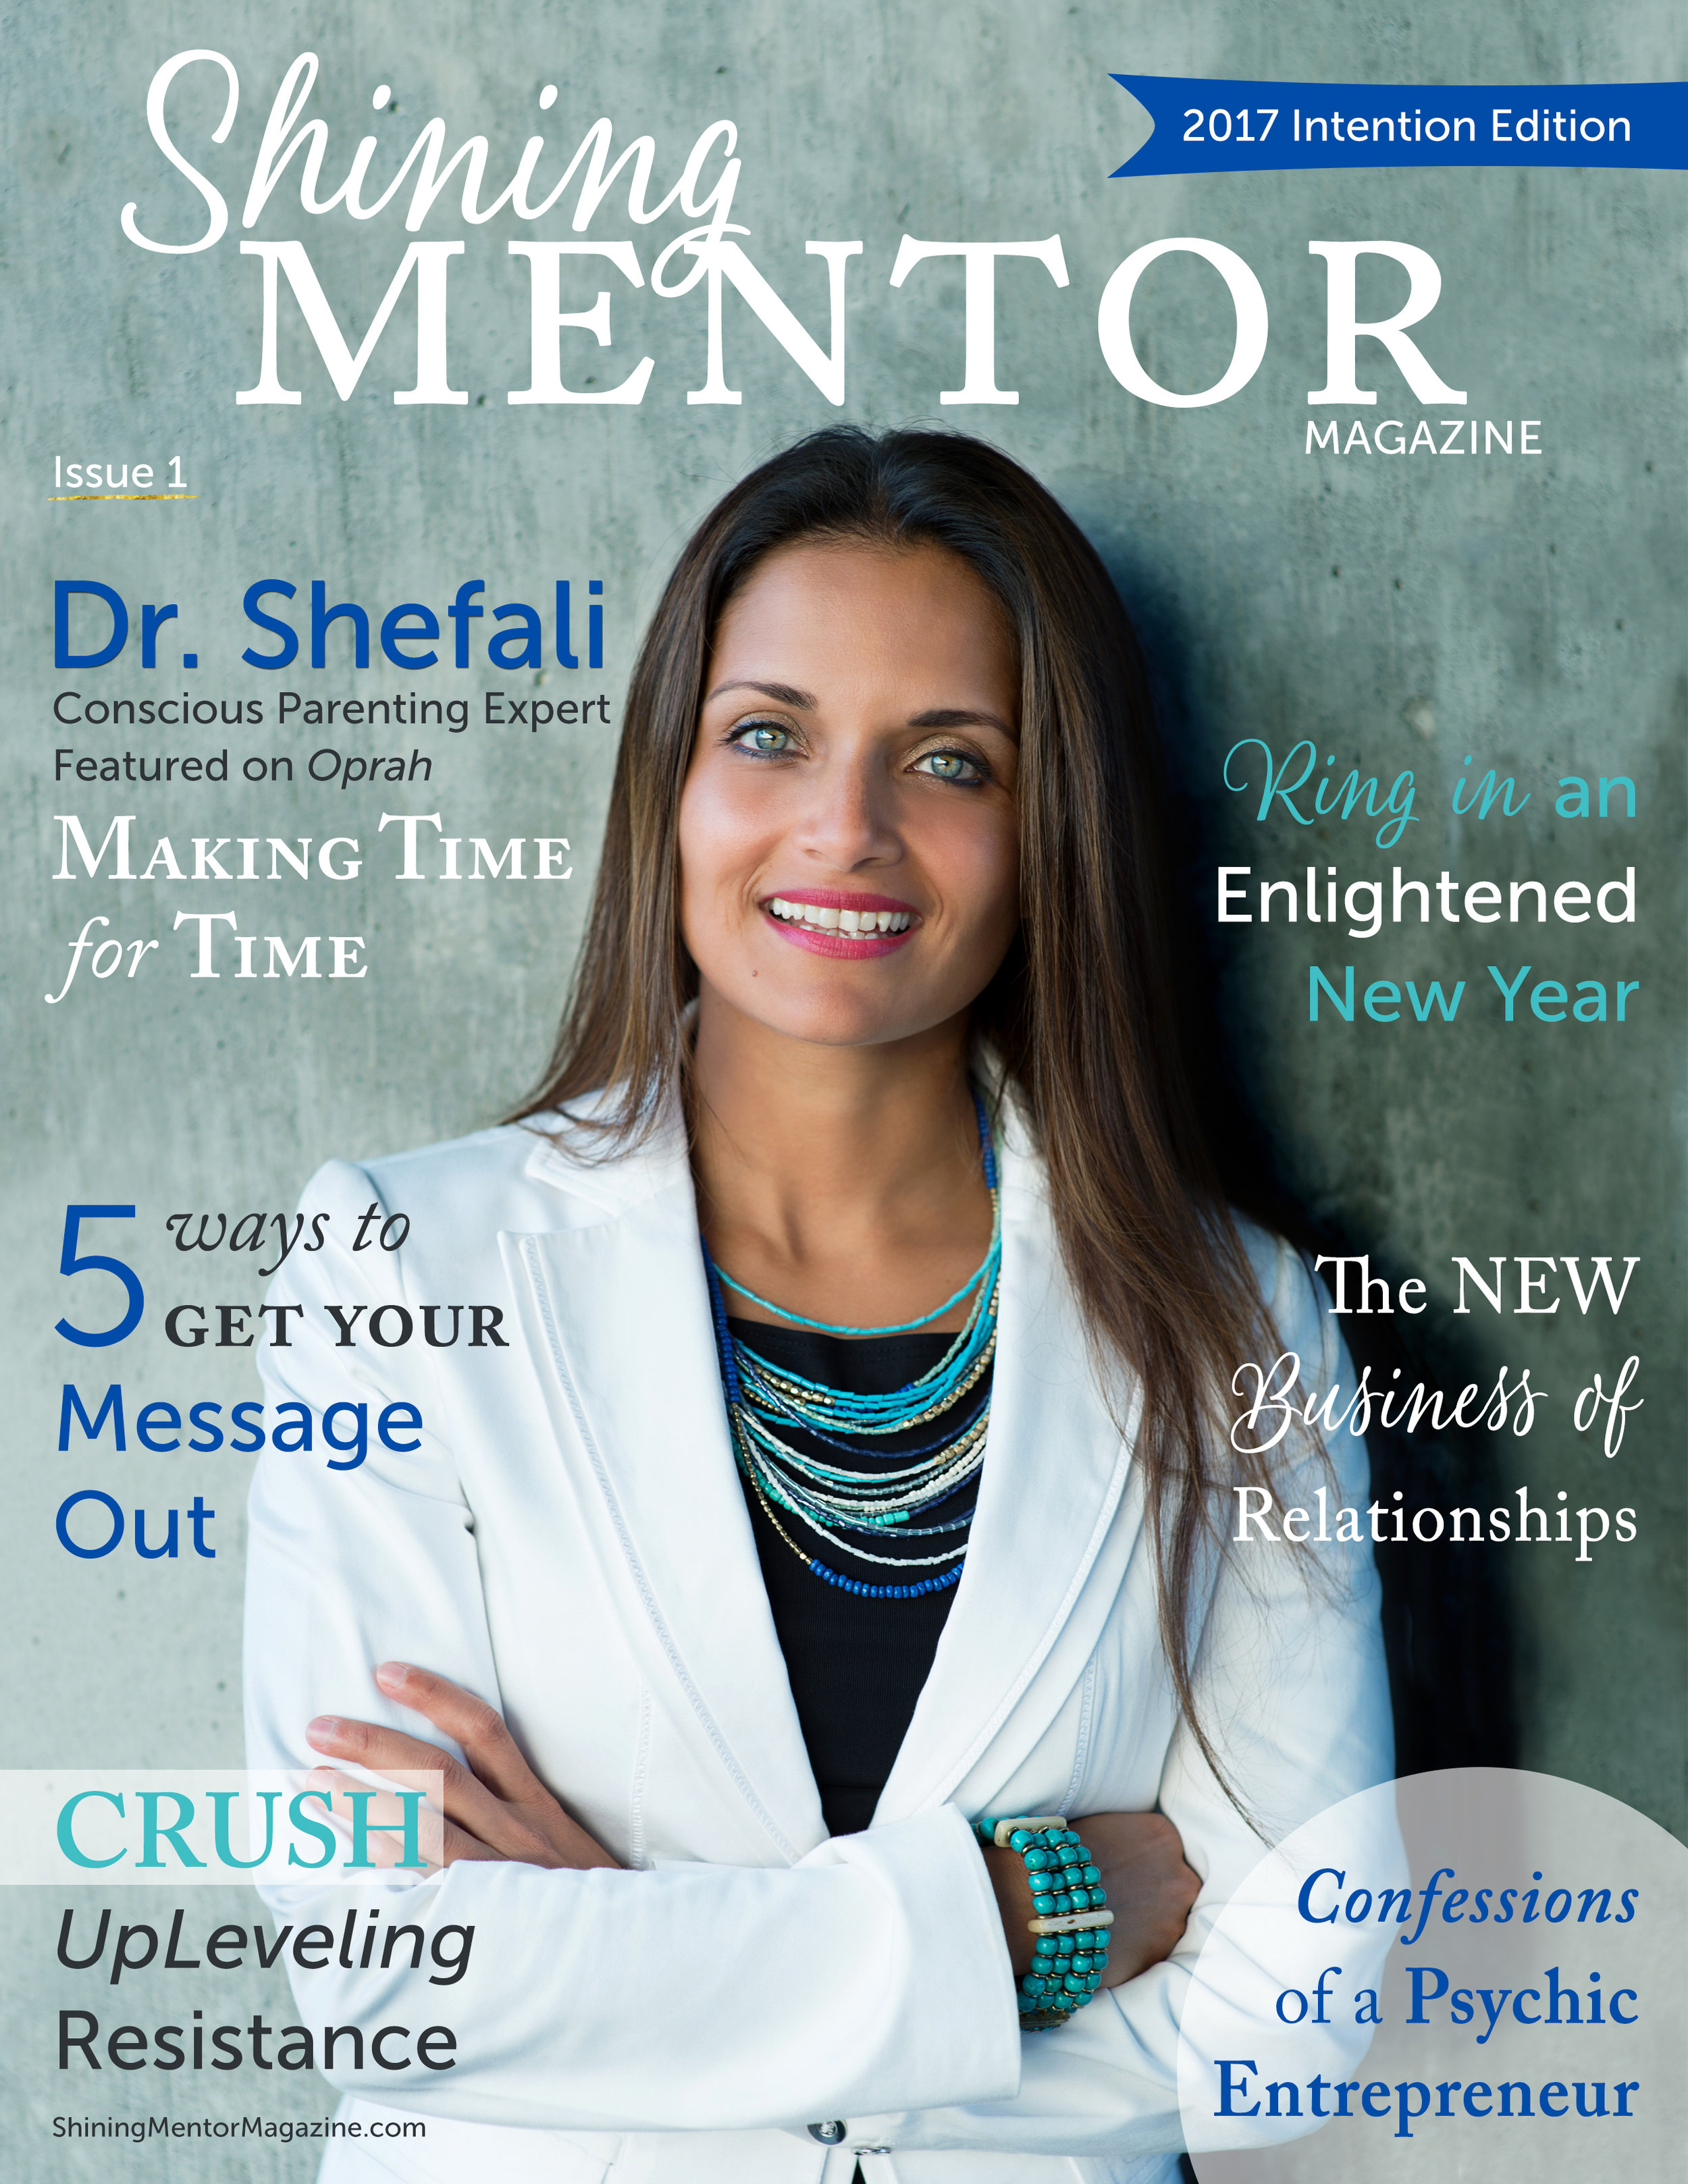 ShiningMentor_Issue1_V2_Cover_Dr.Shefali.jpg